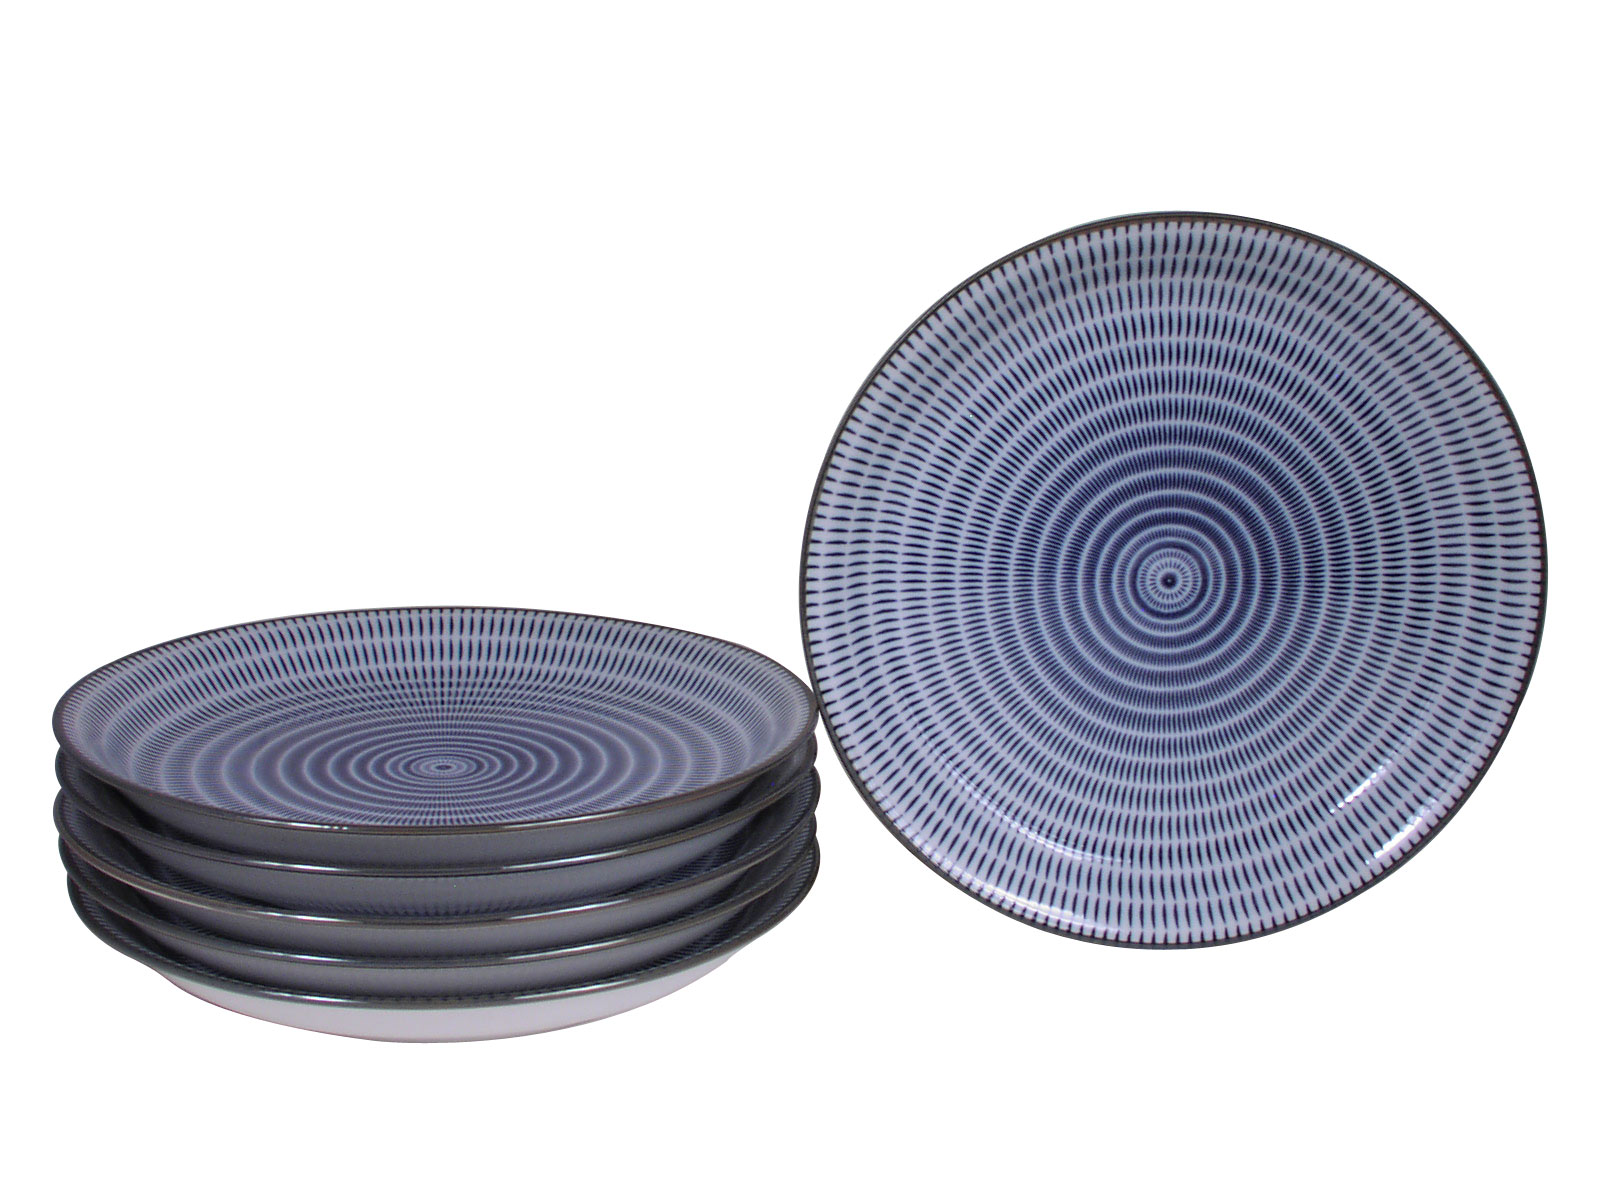 Large Kitchen Canisters Blue And White Modern Spiral Japanese Plates Set For Six